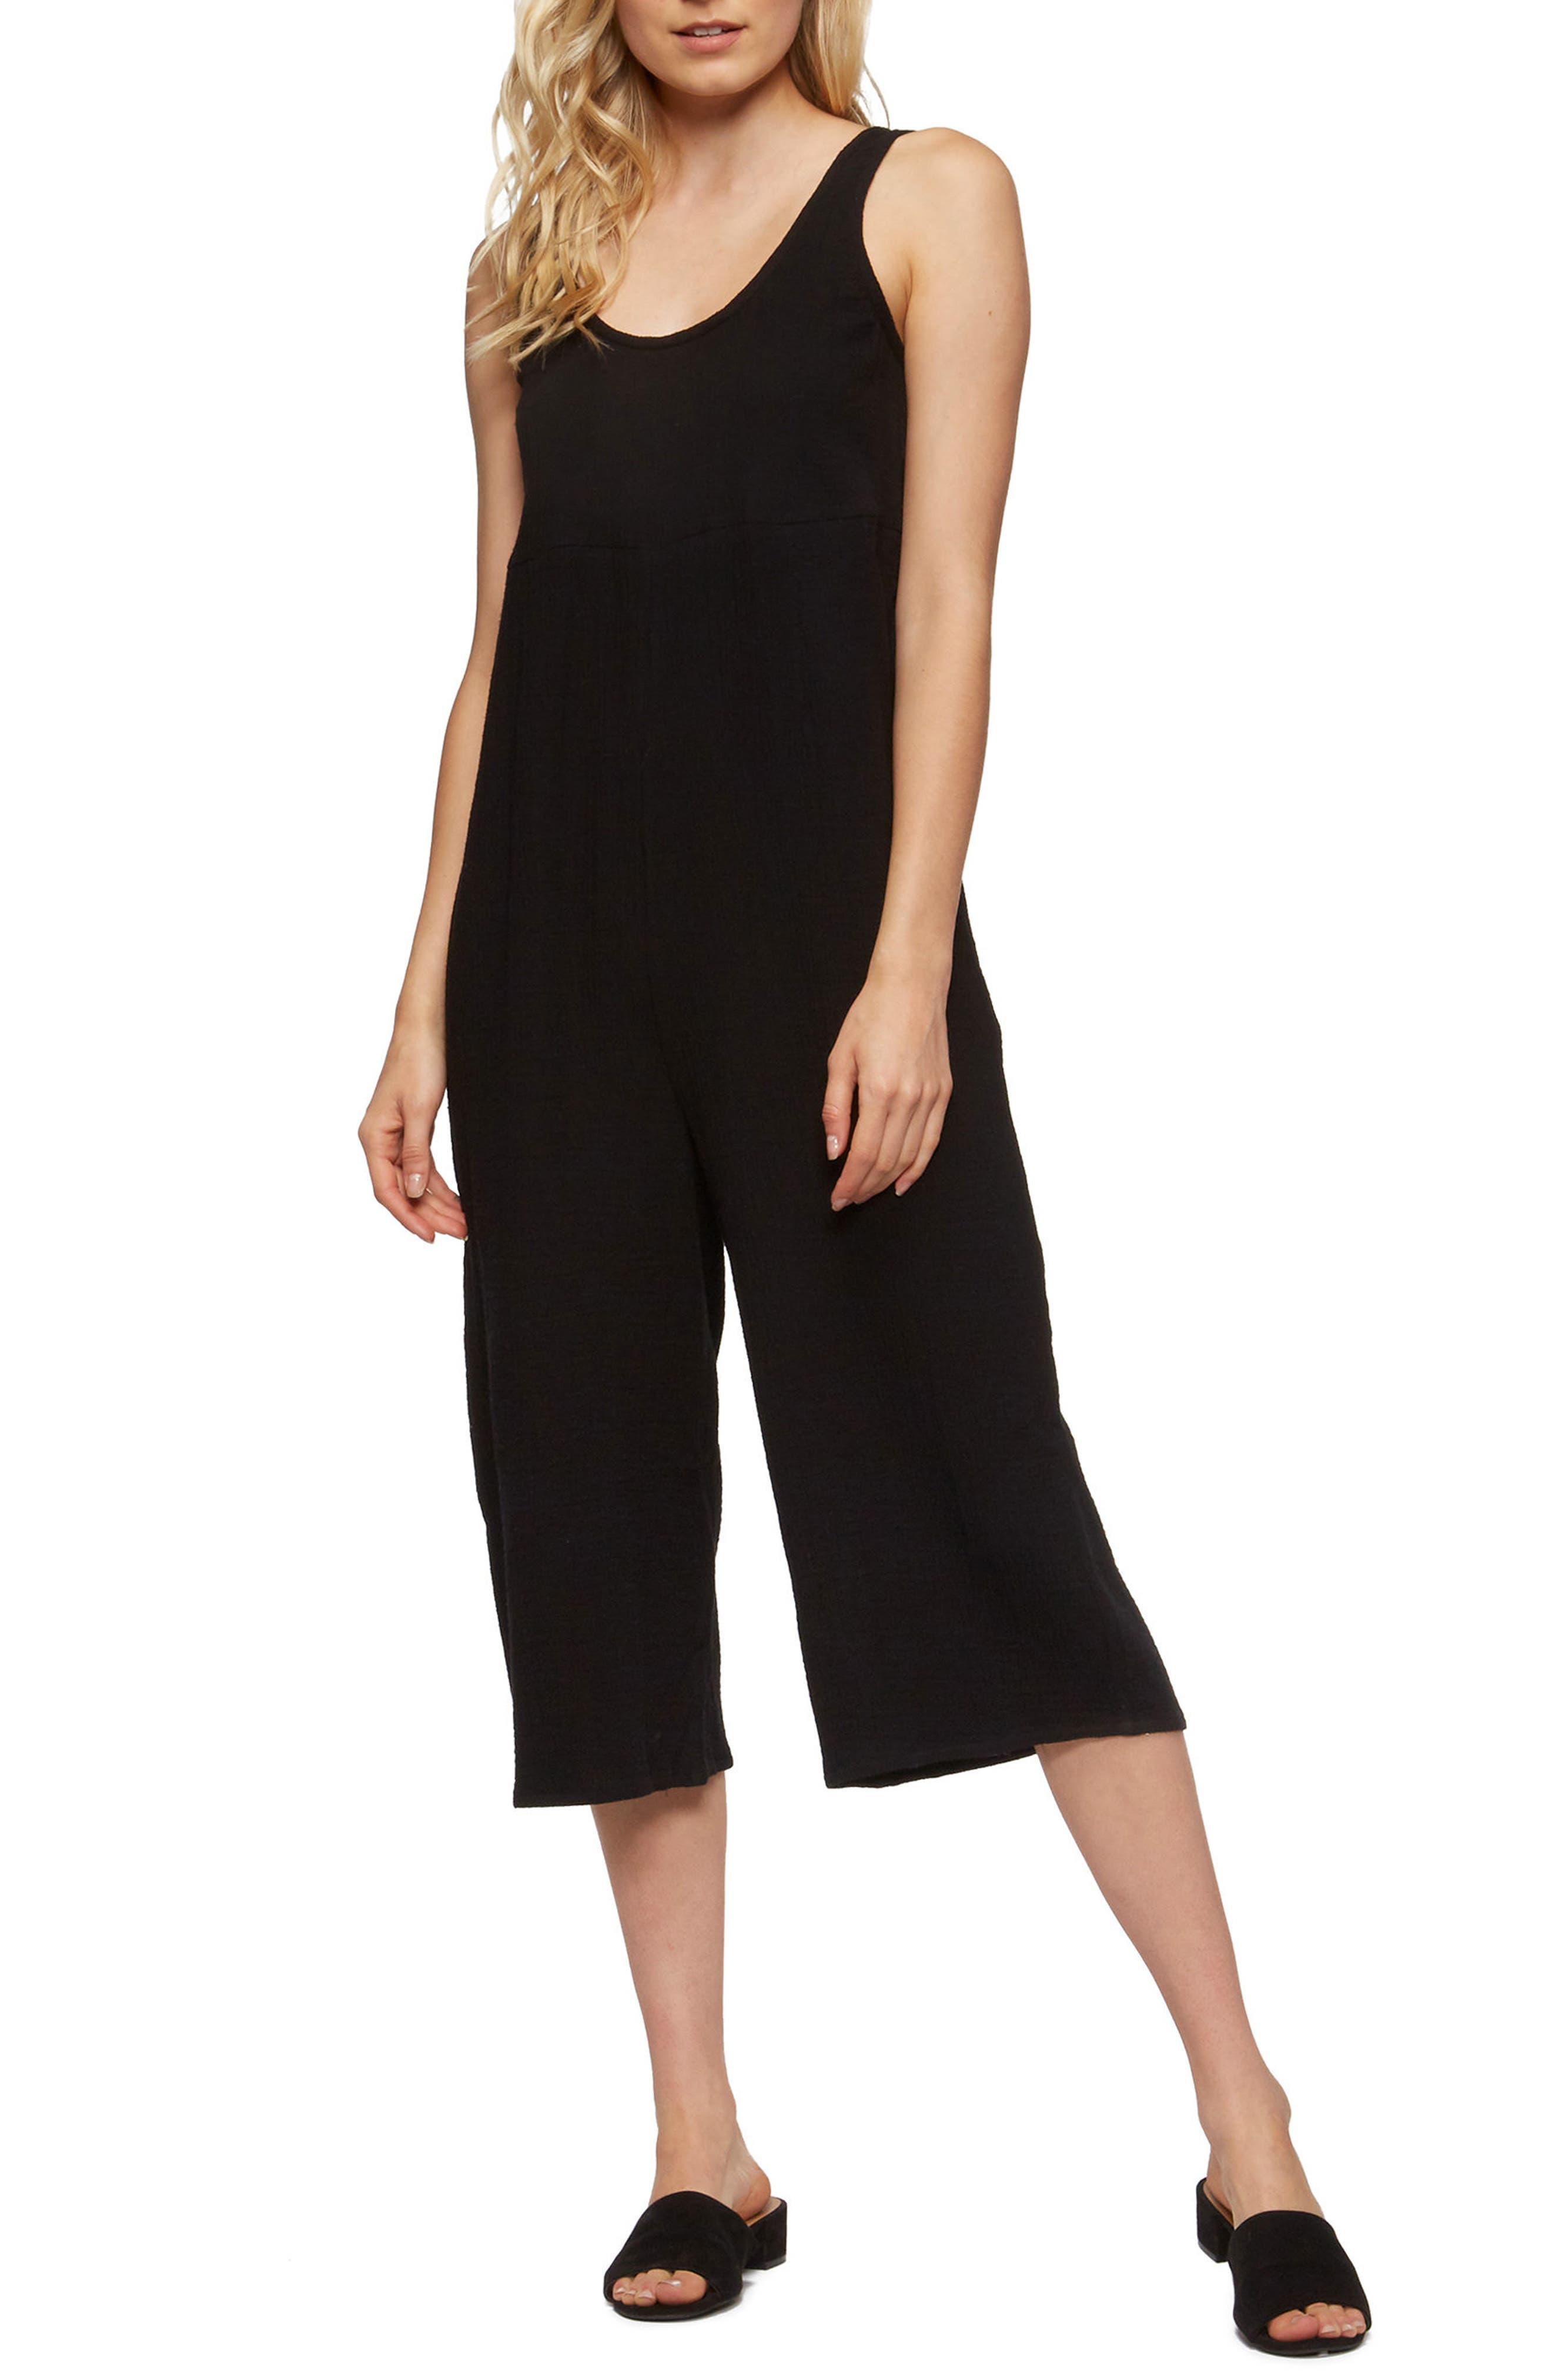 Byrony Jumpsuit Cover-Up,                             Main thumbnail 1, color,                             BLACK